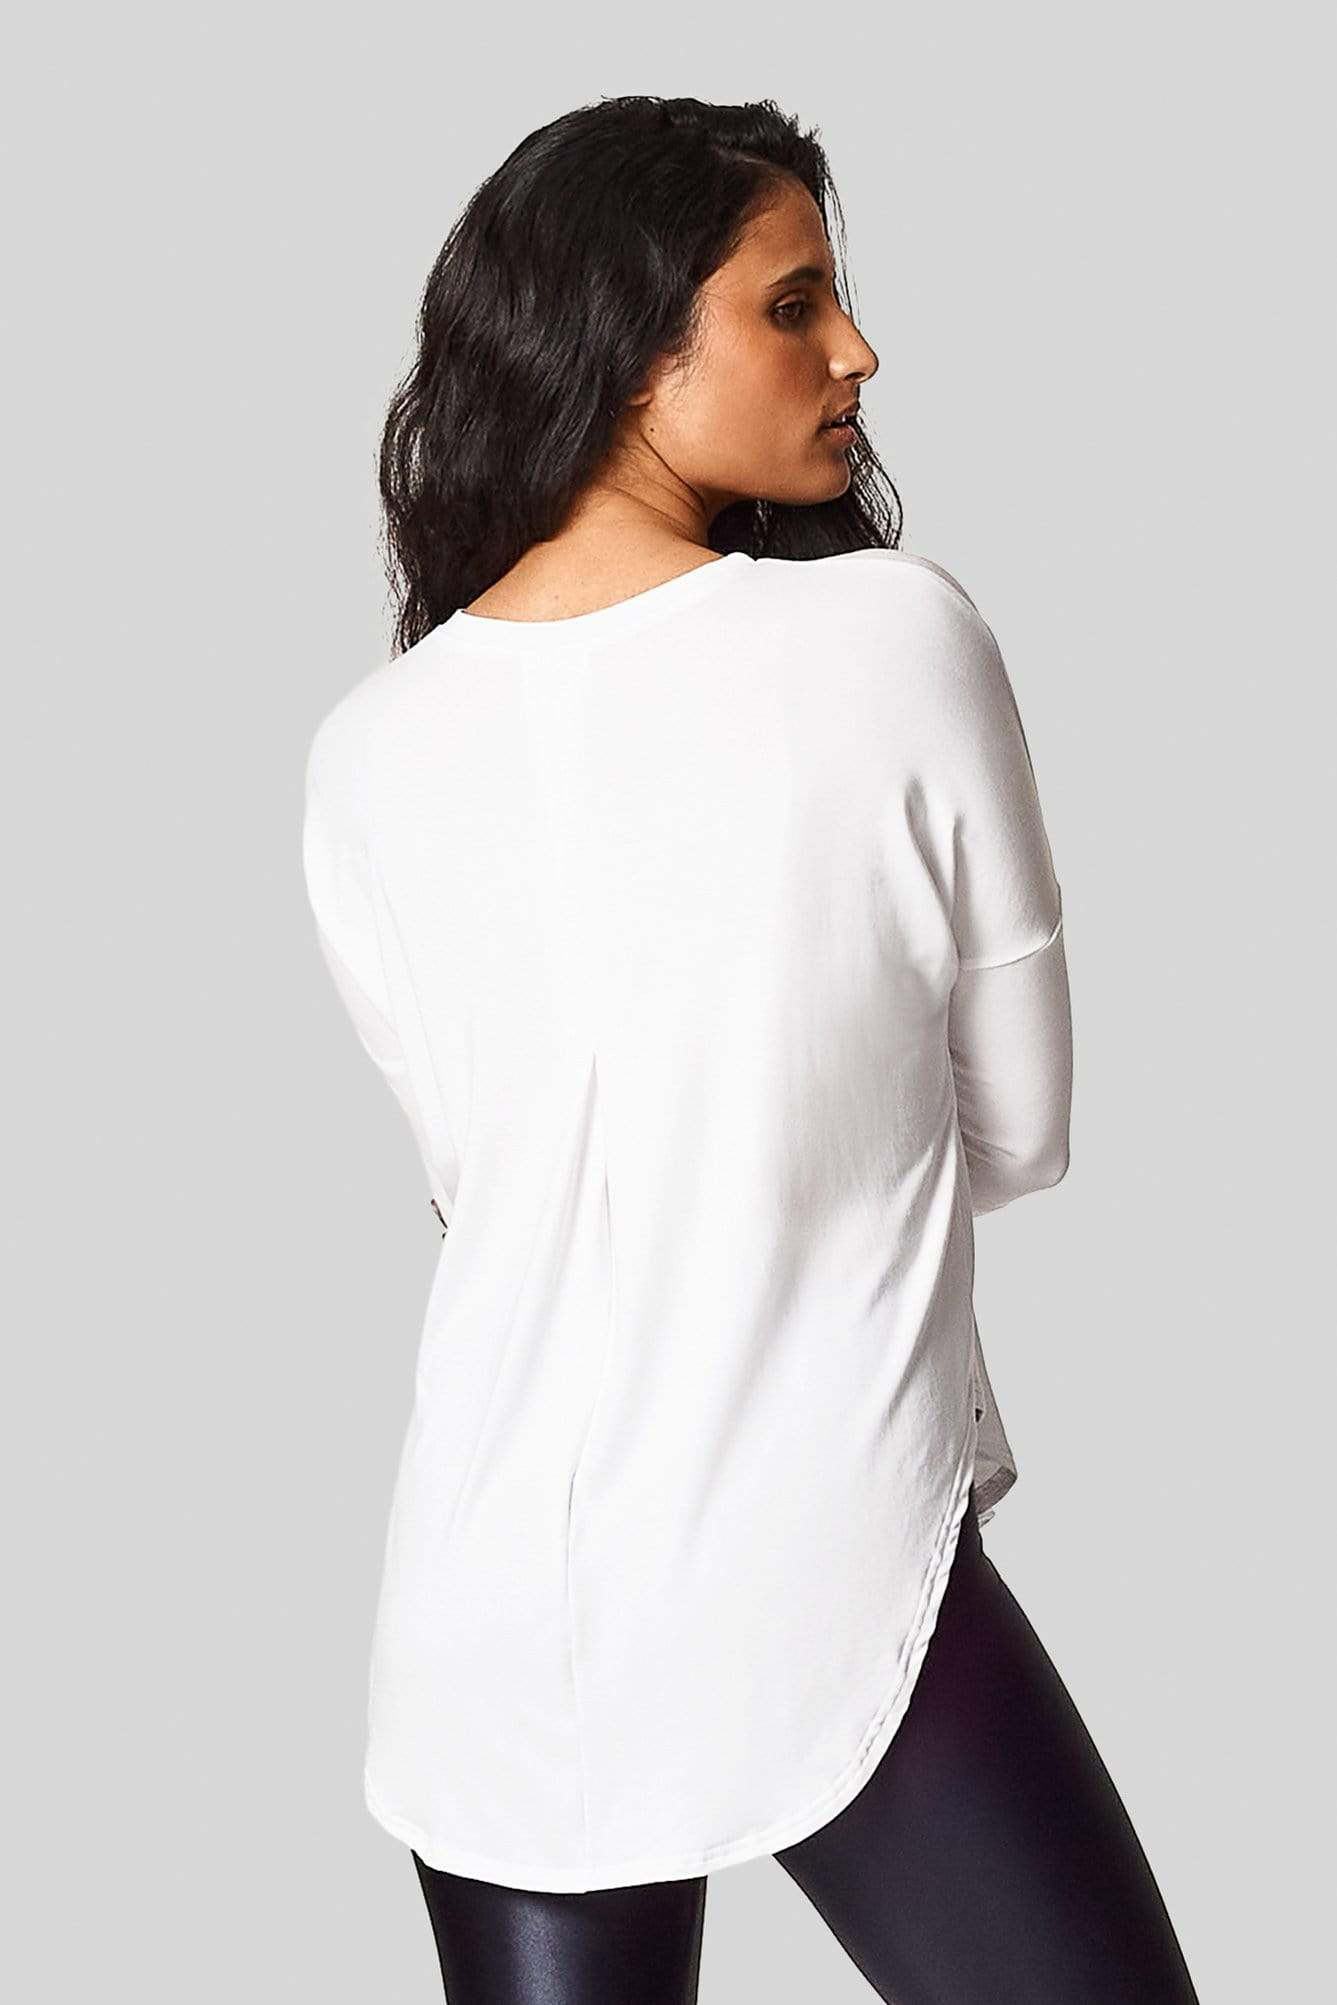 A brunette shows us the back pleat in her white 3/4 length sleeve tee-shirt.